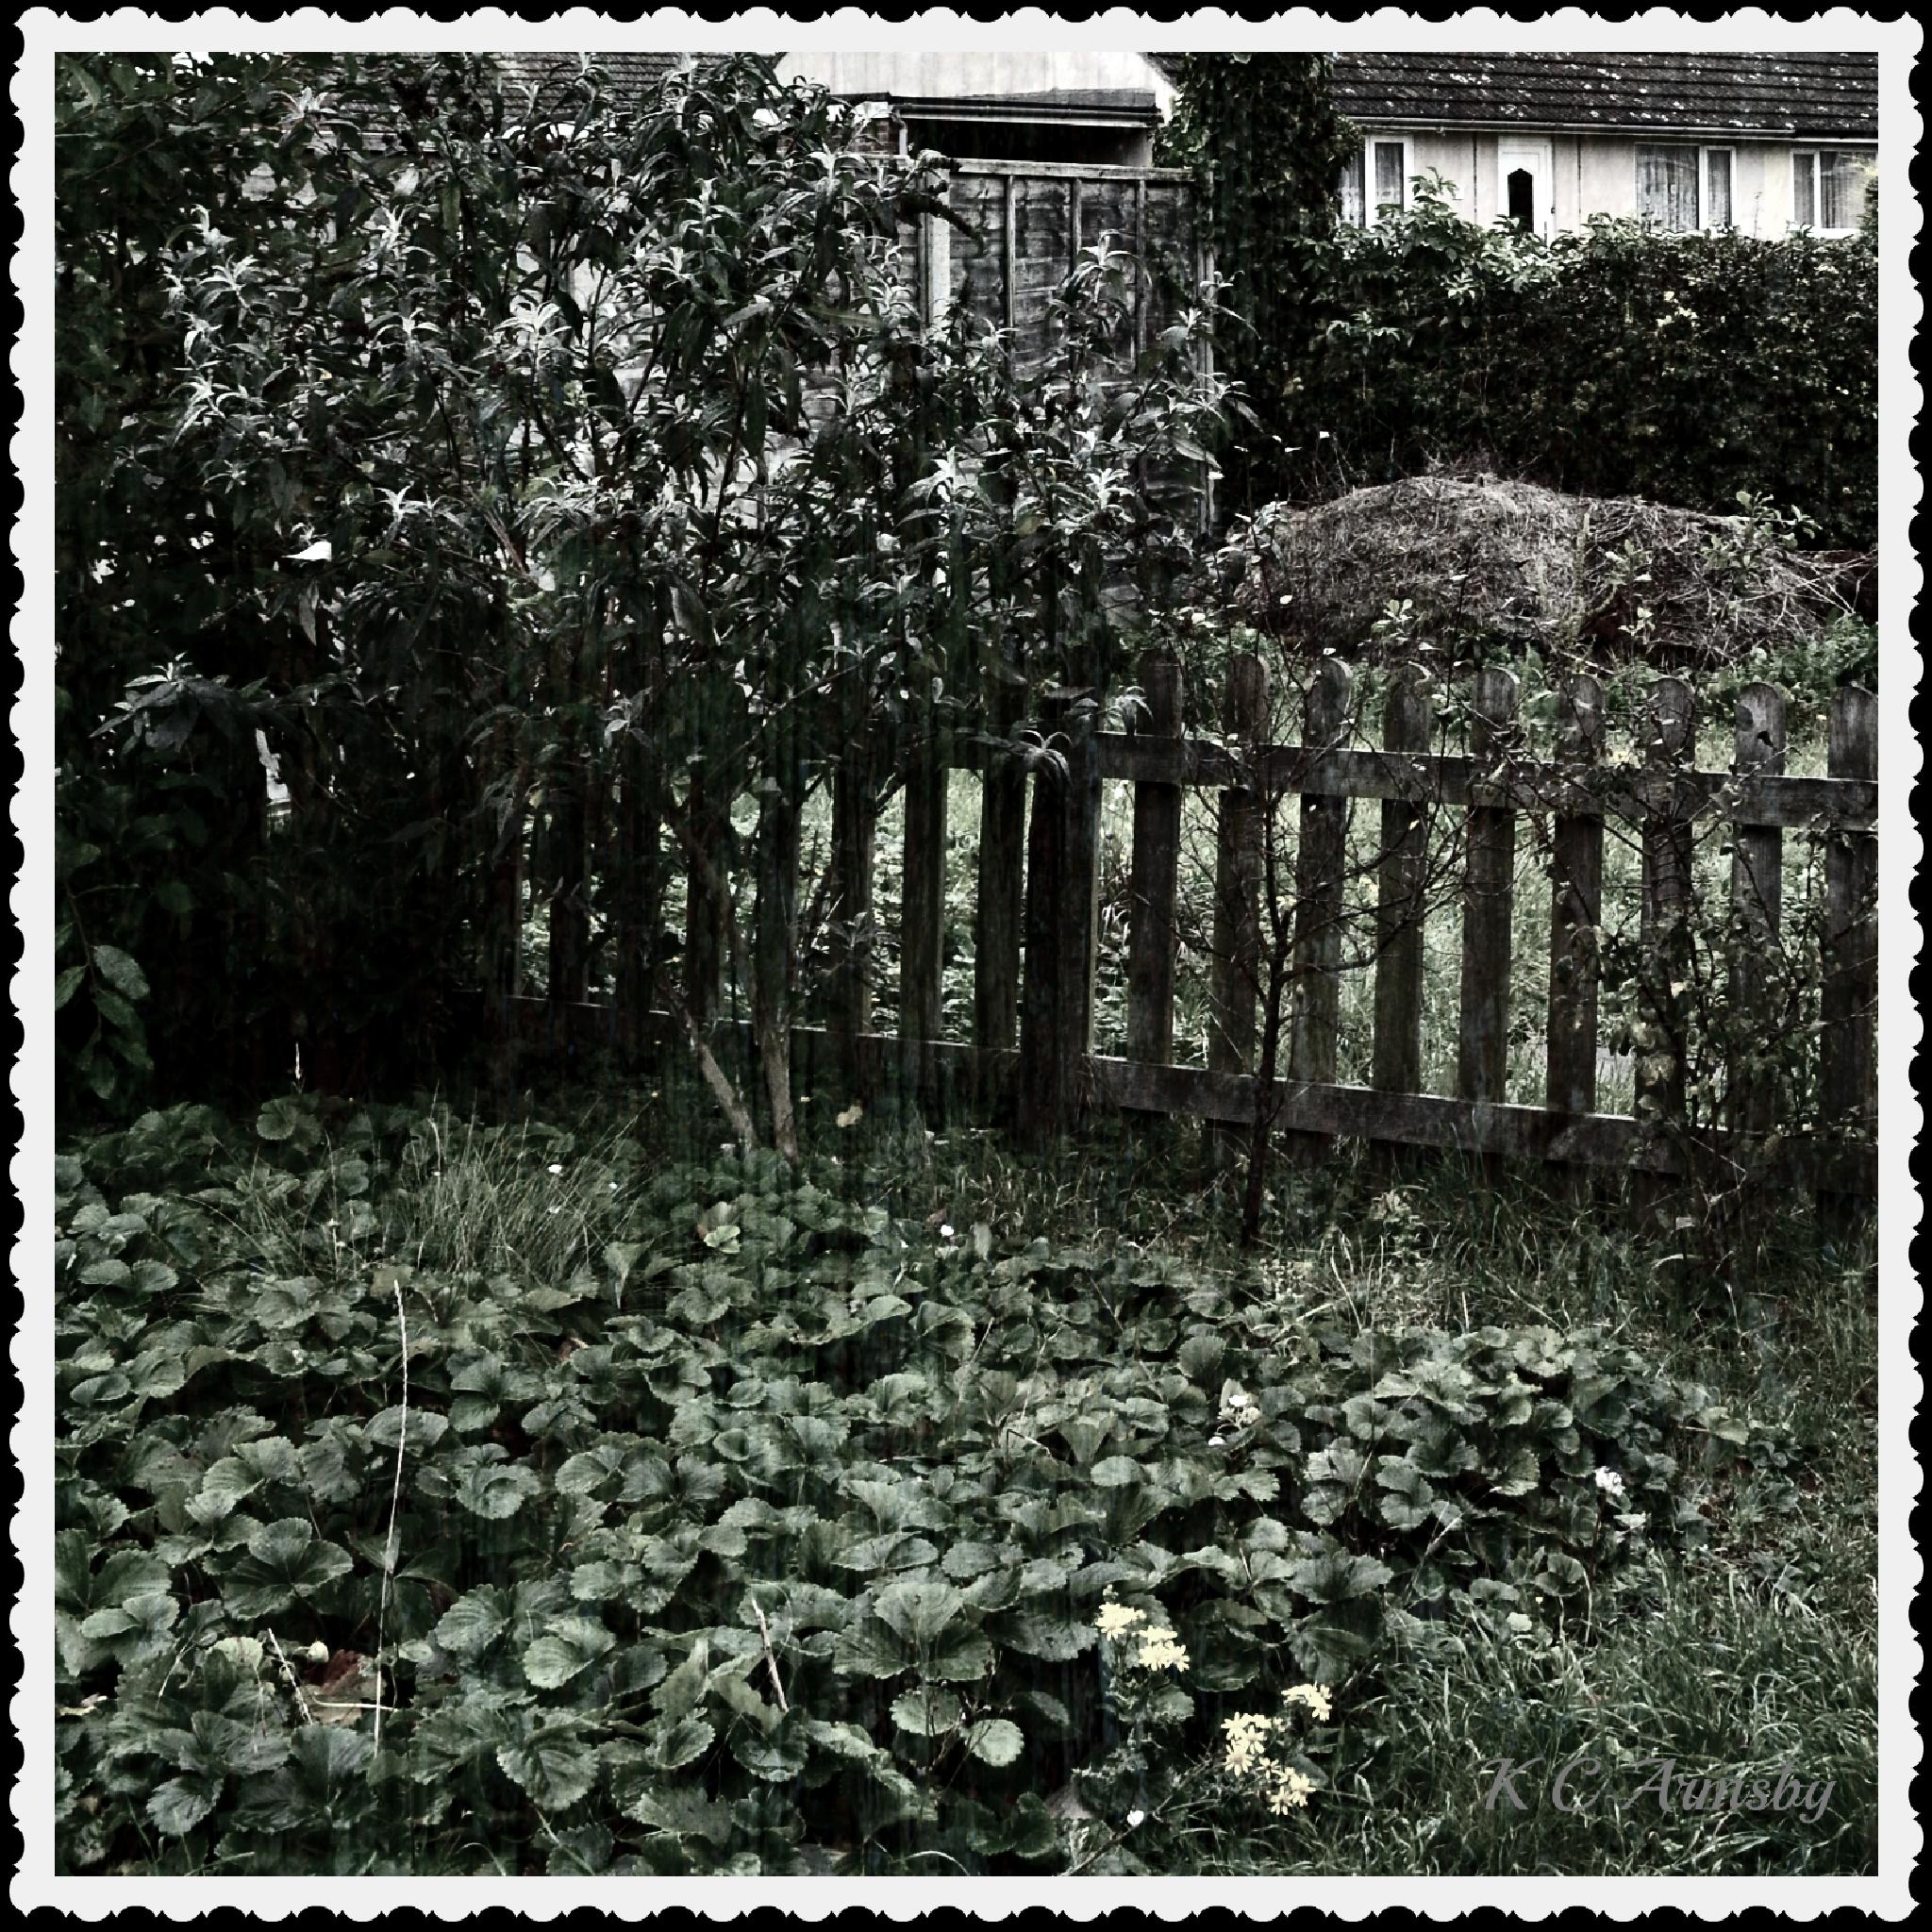 Strawberry patch by Charles